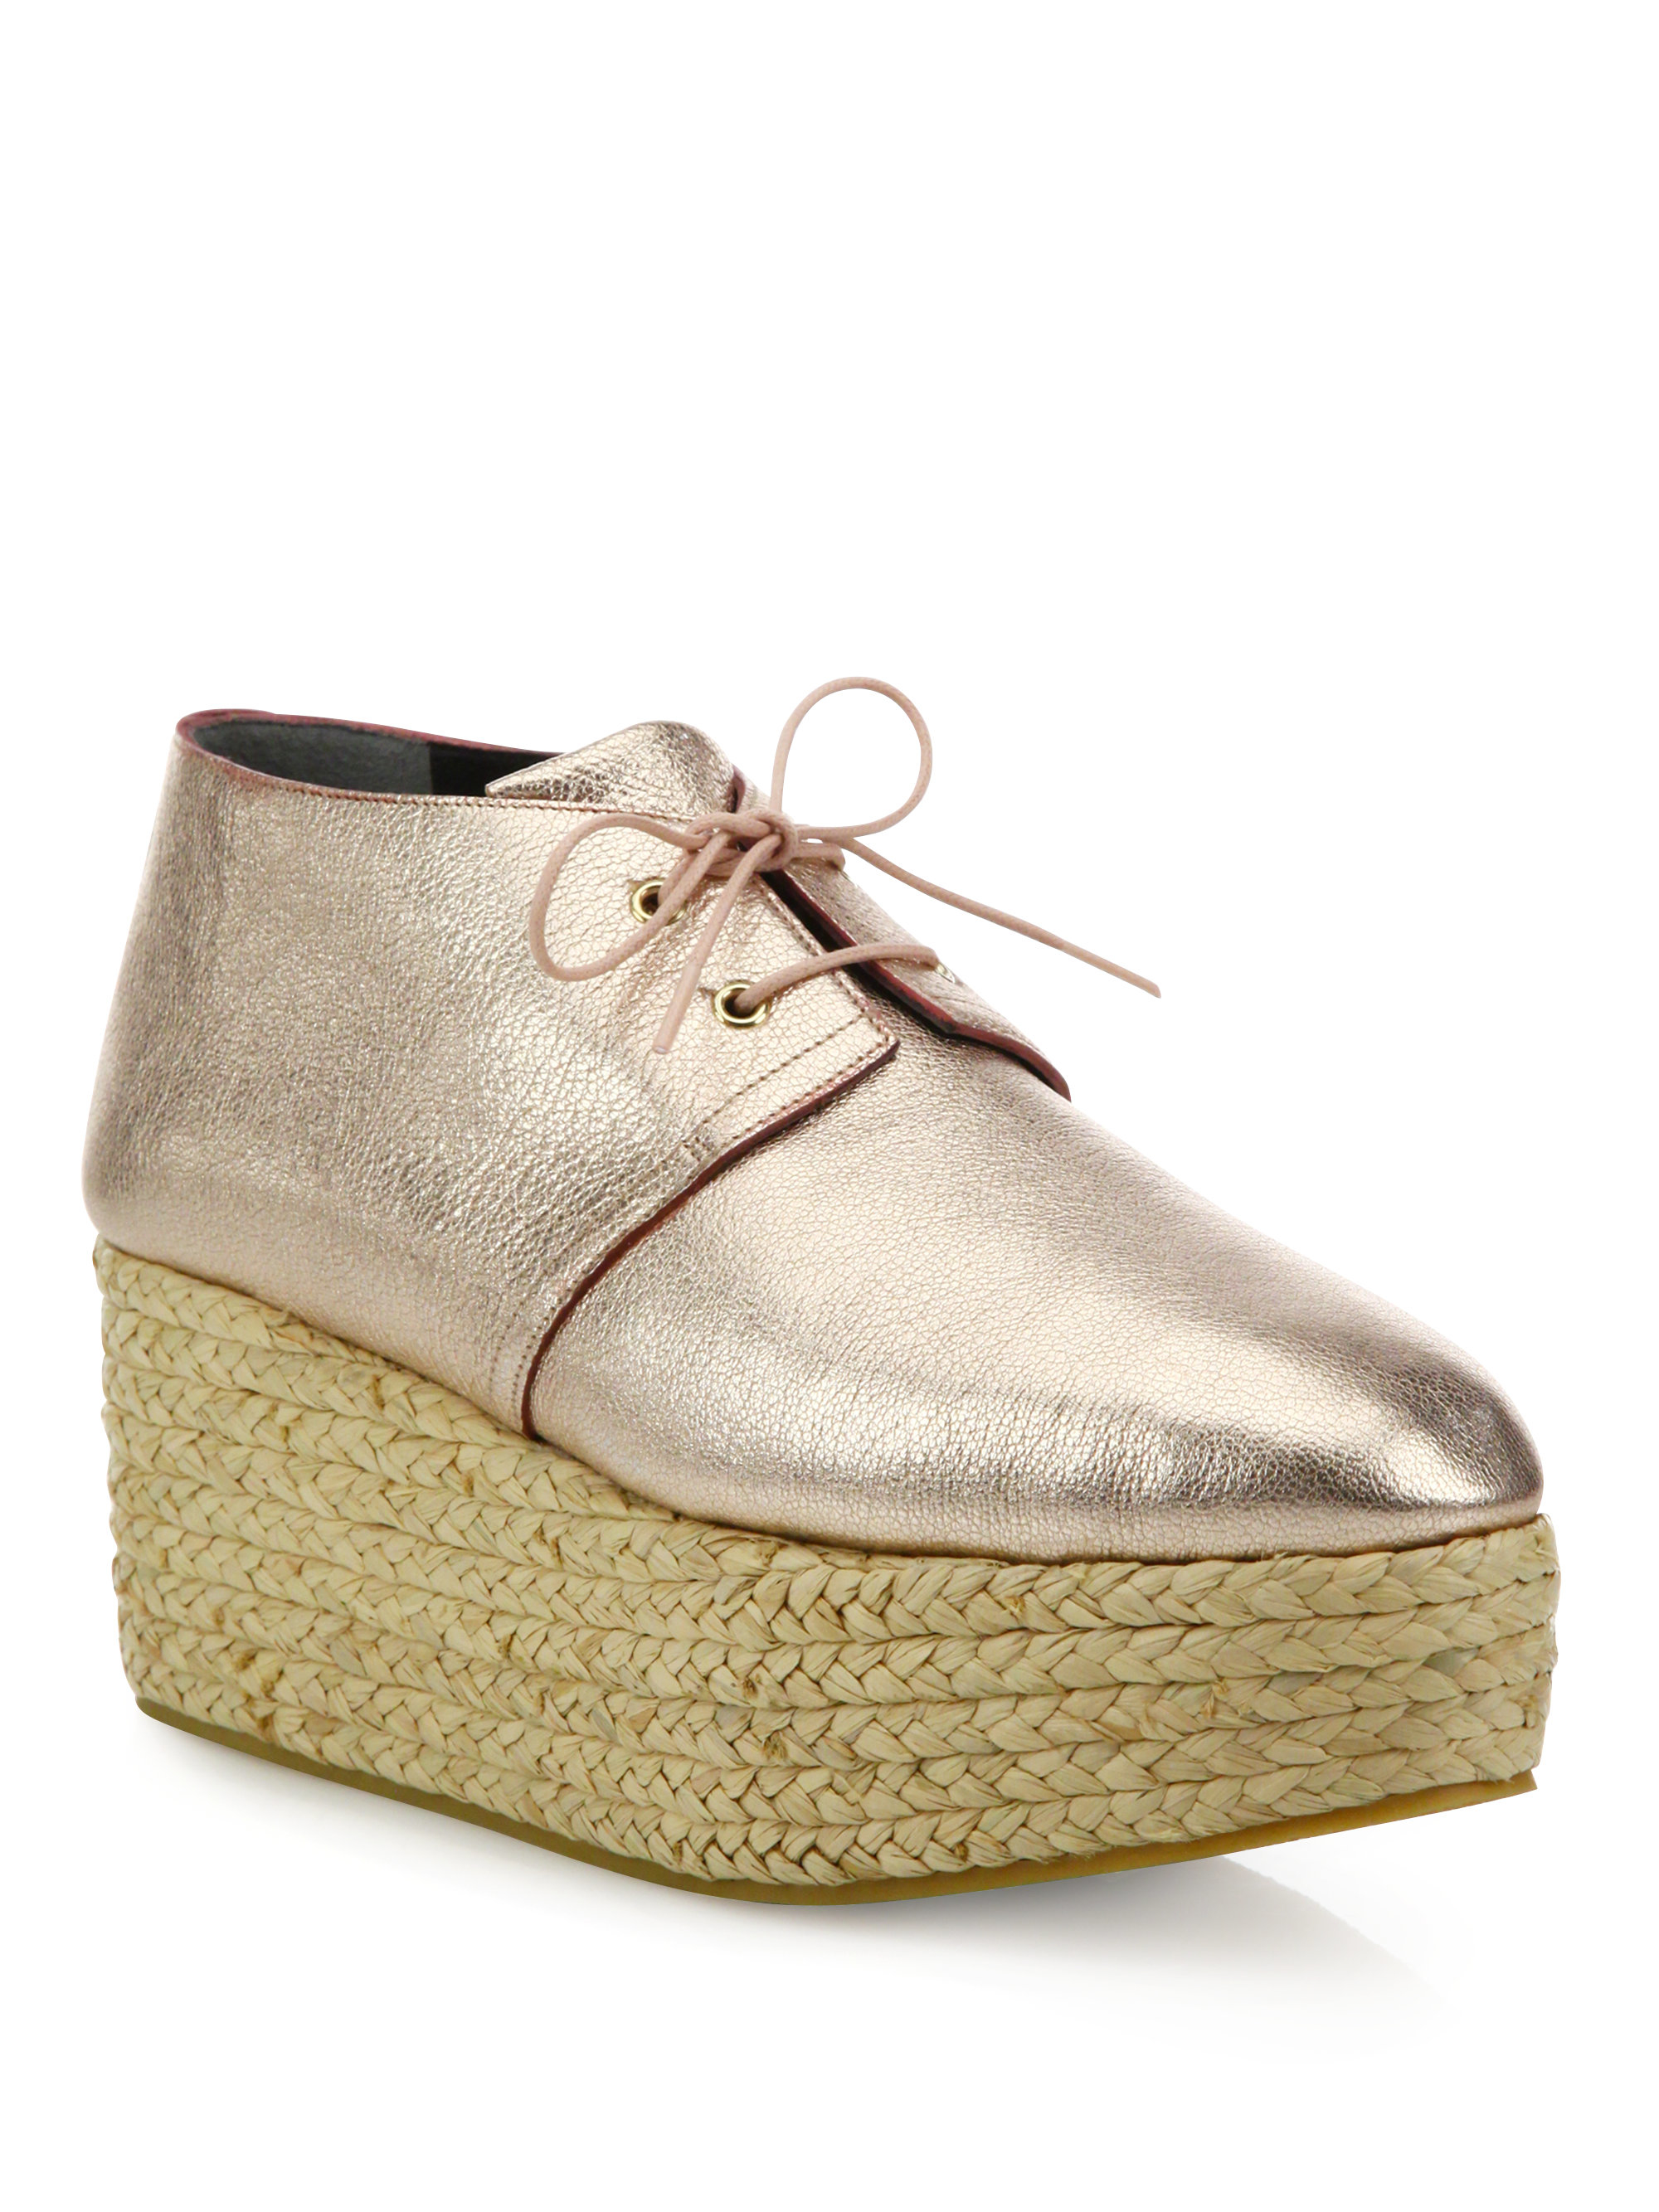 Robert Clergerie Leather Espadrille Sandals cheap order cheap 2015 new arrival cheap online clearance DdglMY